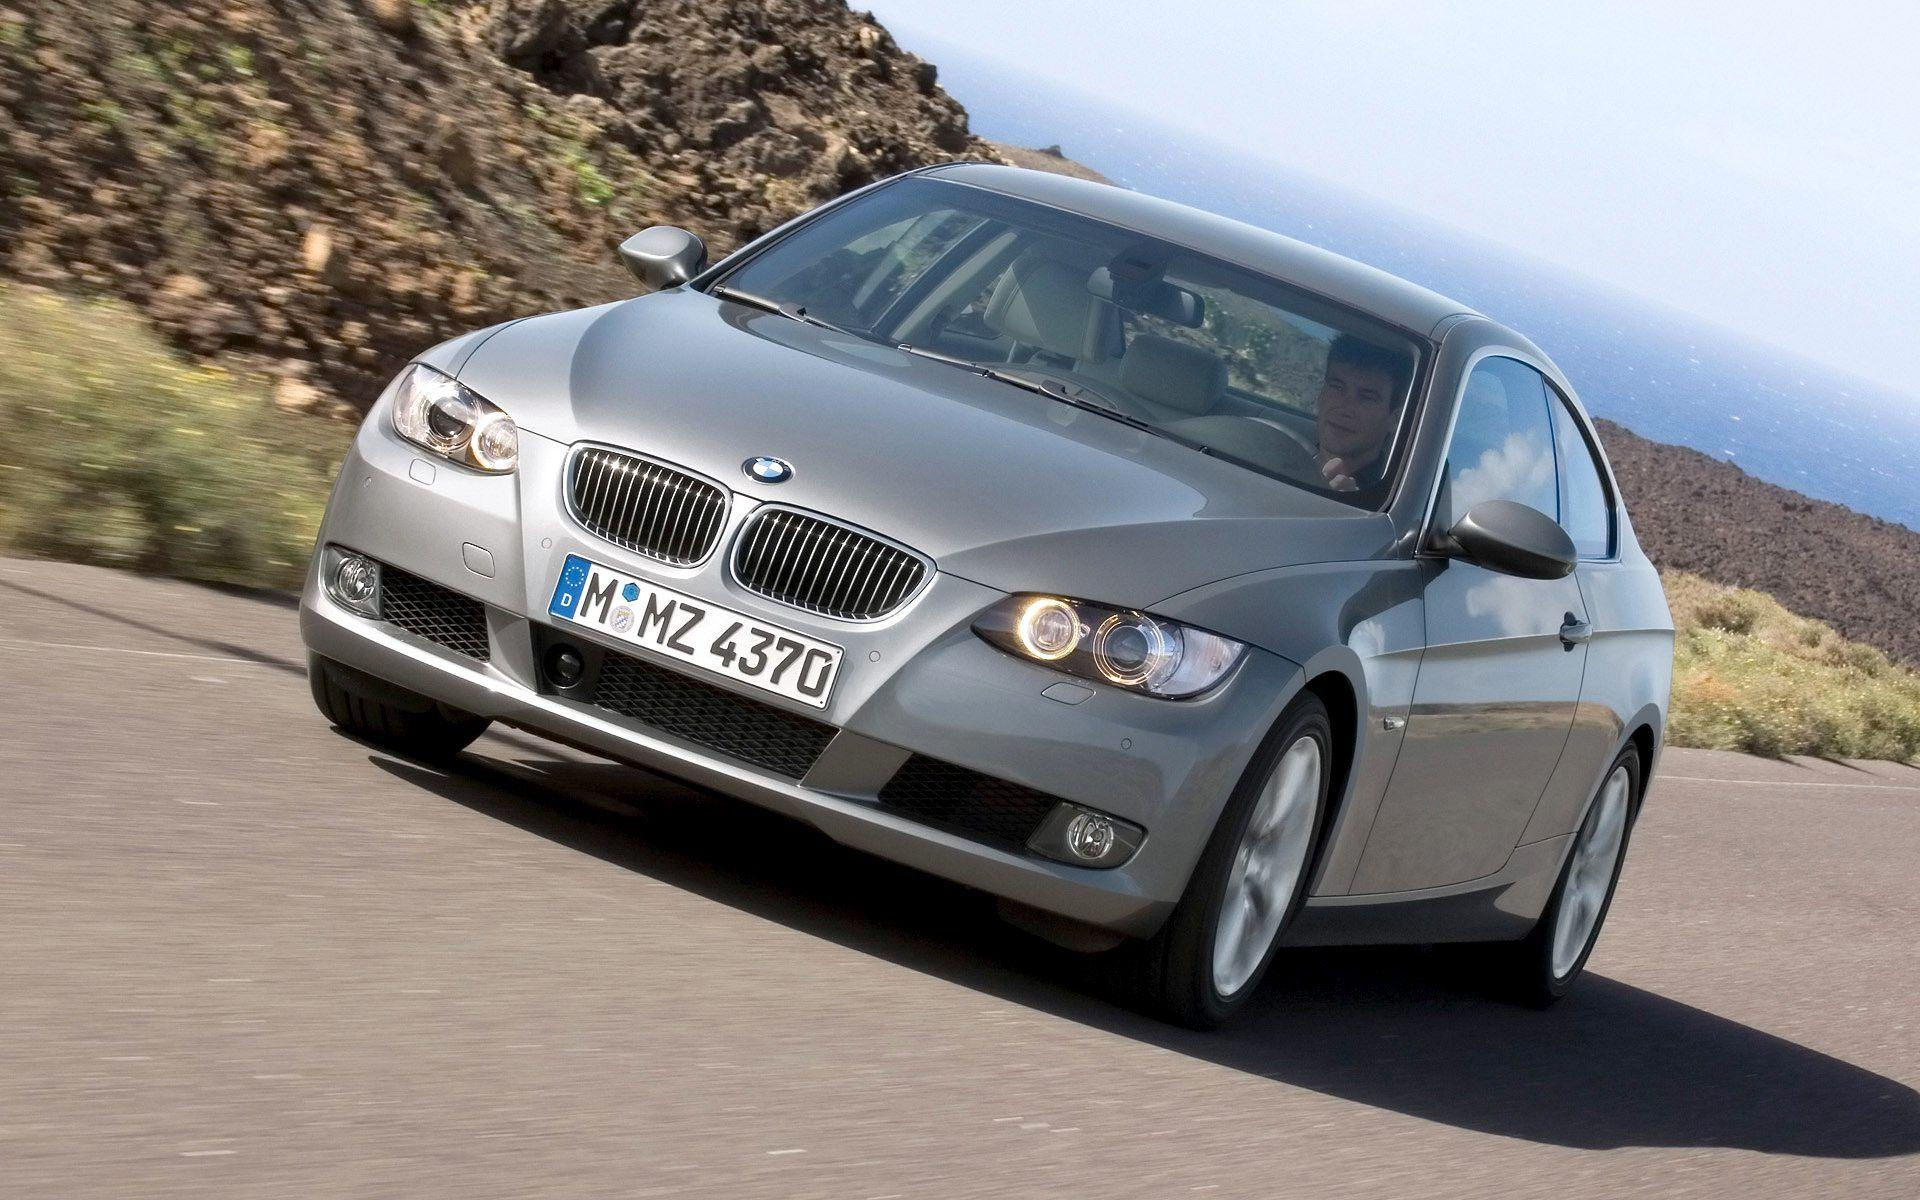 2007 BMW 335i Coupe Wallpaper 01 - 1920x1200